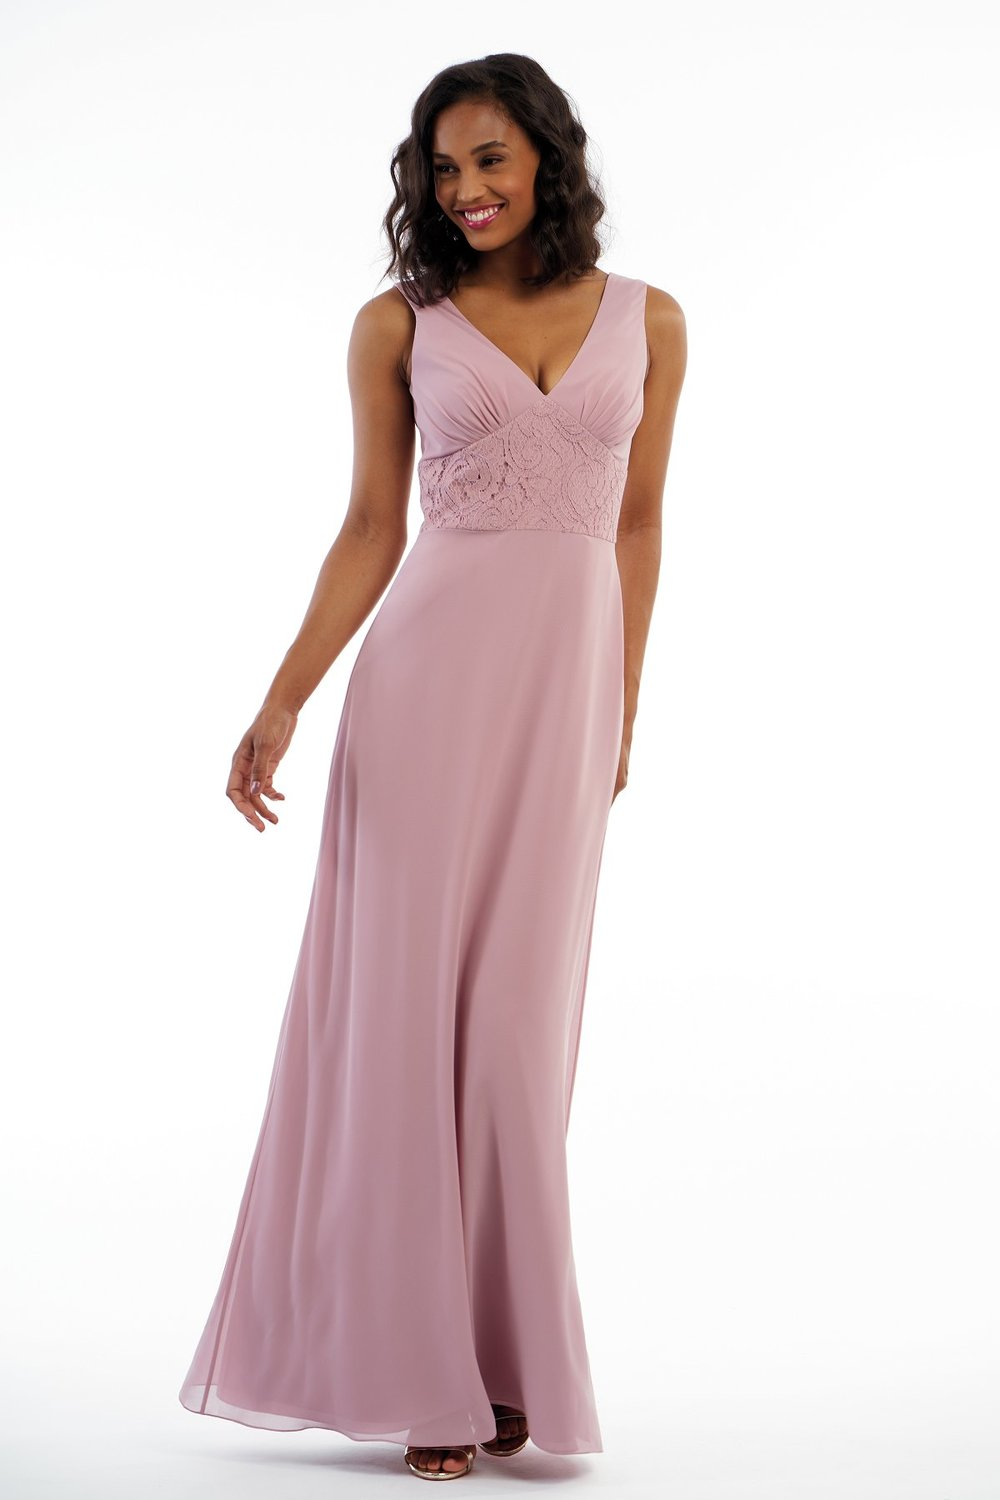 P216012 -  Simple charlotte chiffon and lace floor length bridesmaid dress with a flattering V-neckline and V back. Detailed gathers on the bodice and a flowy skirt to complete the look.    Available in 18 colors